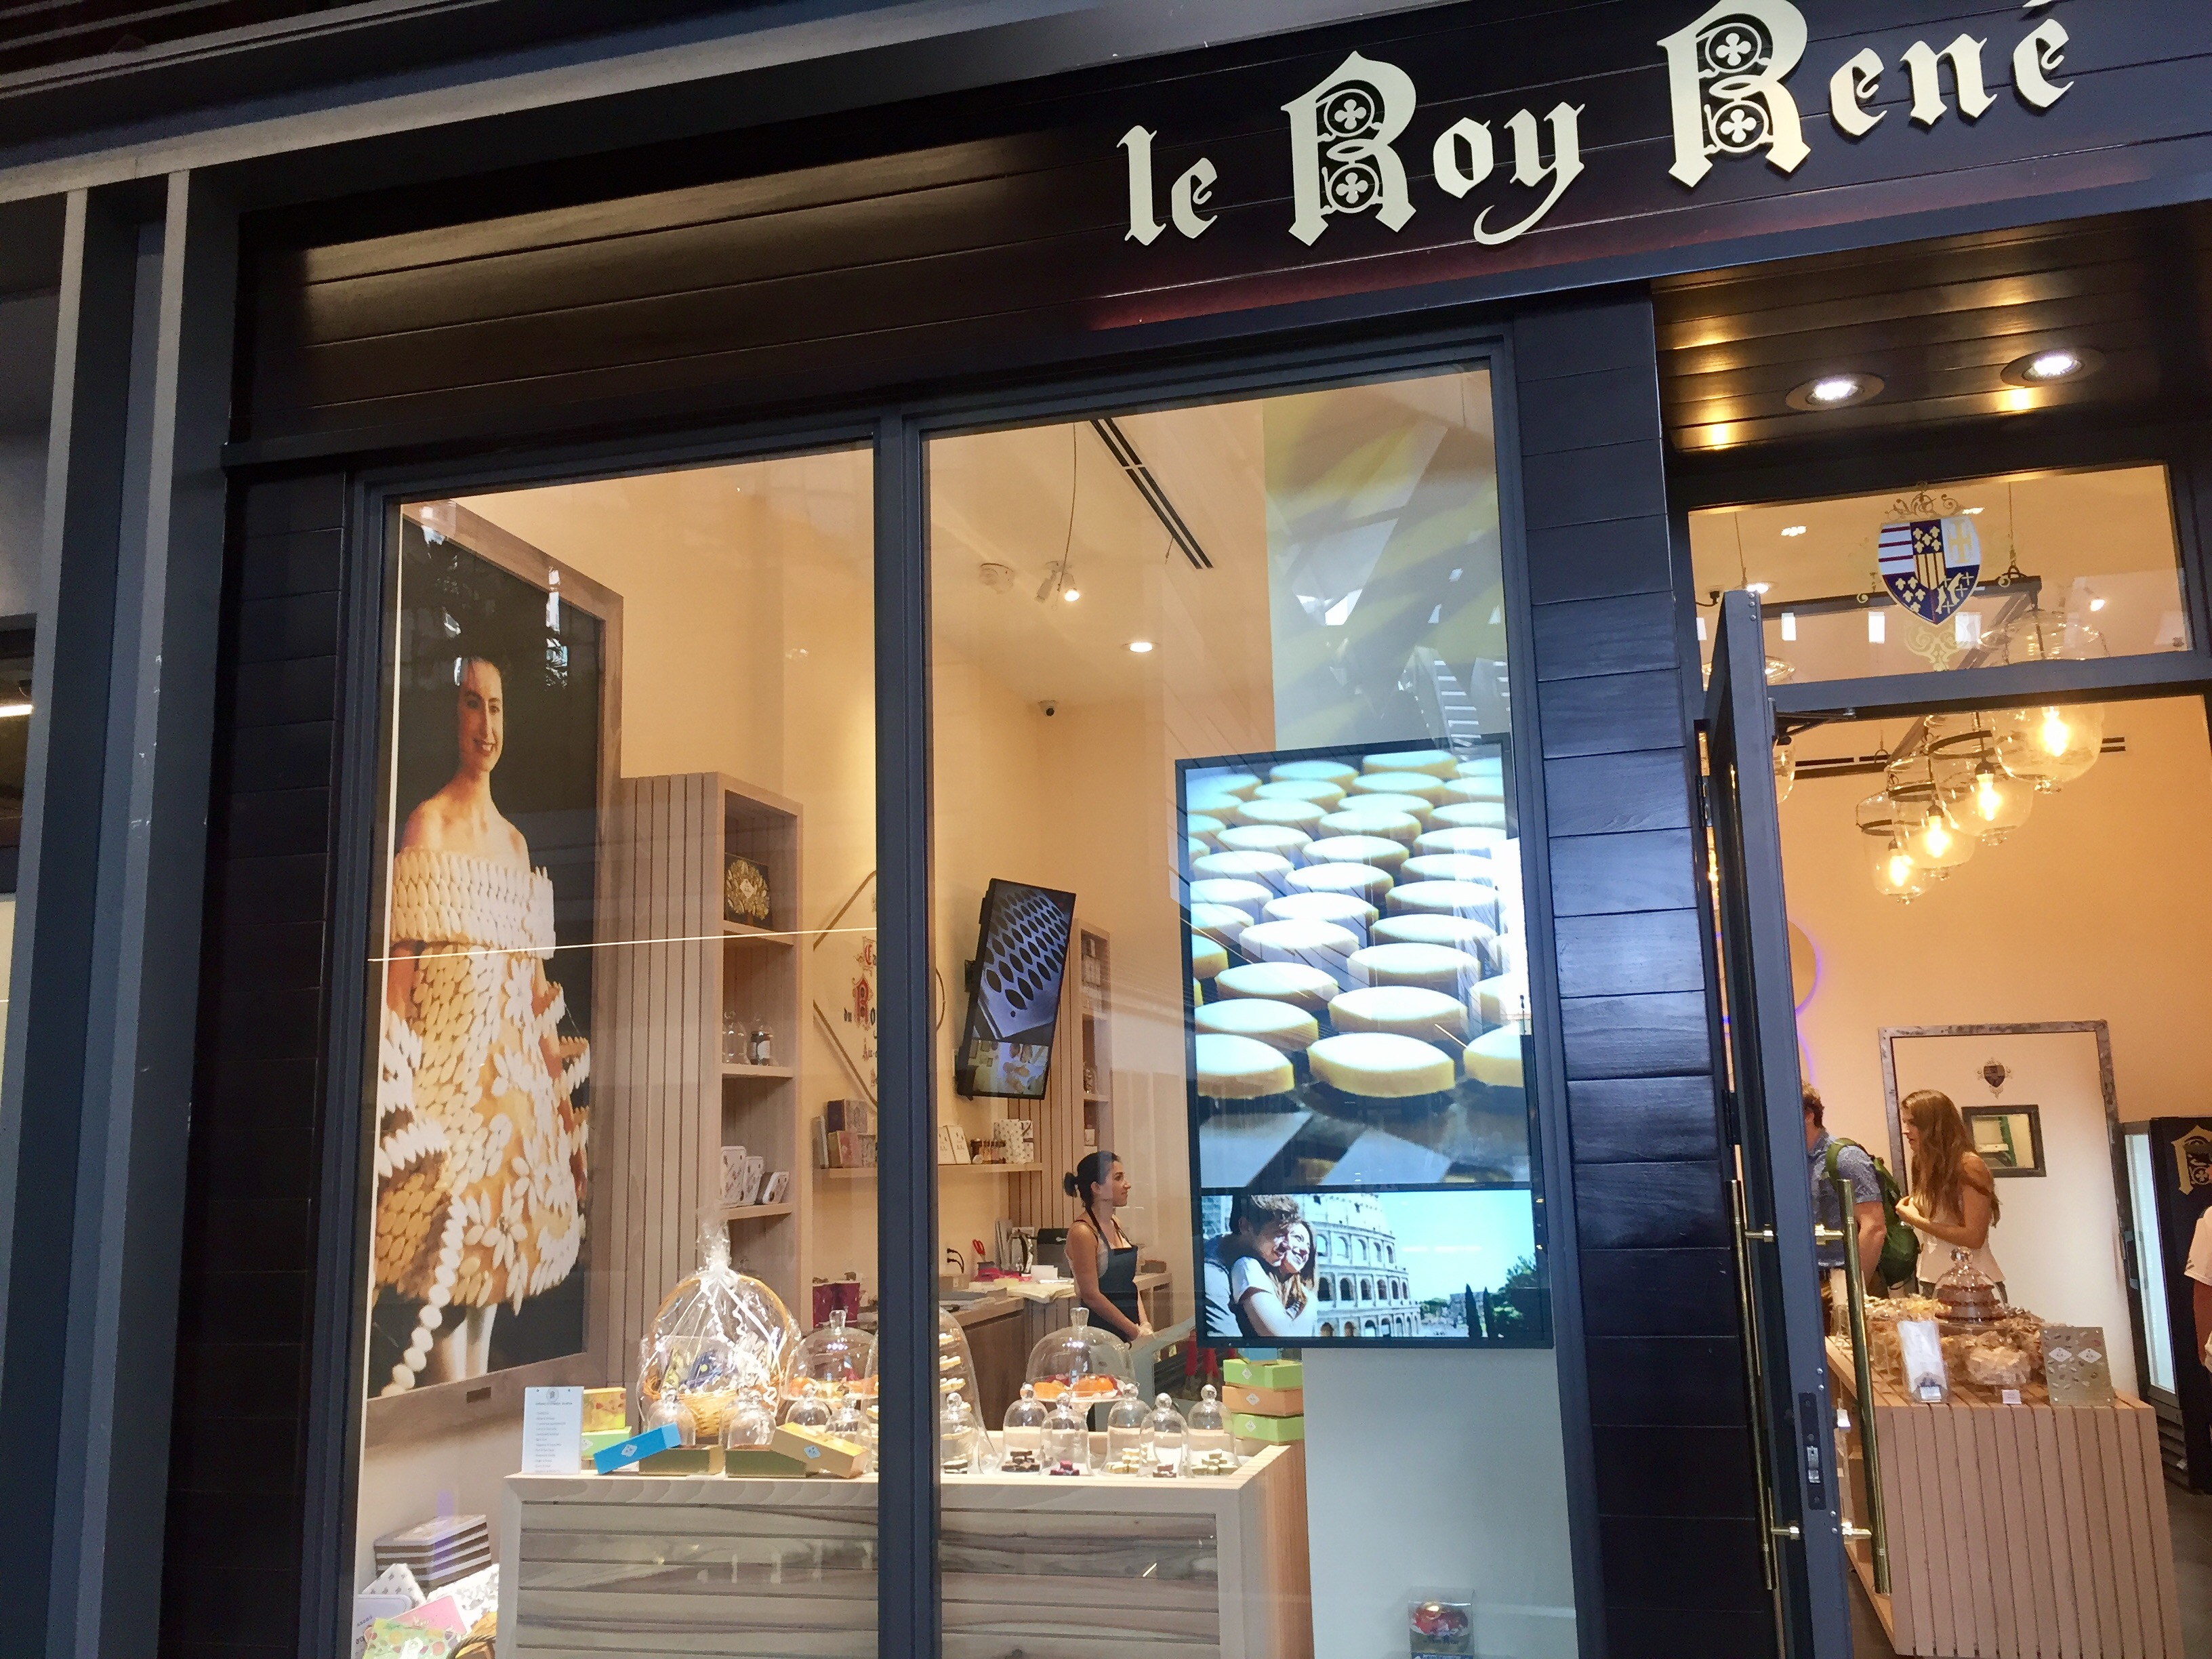 Le Roy Rene, Brickell City C., FL